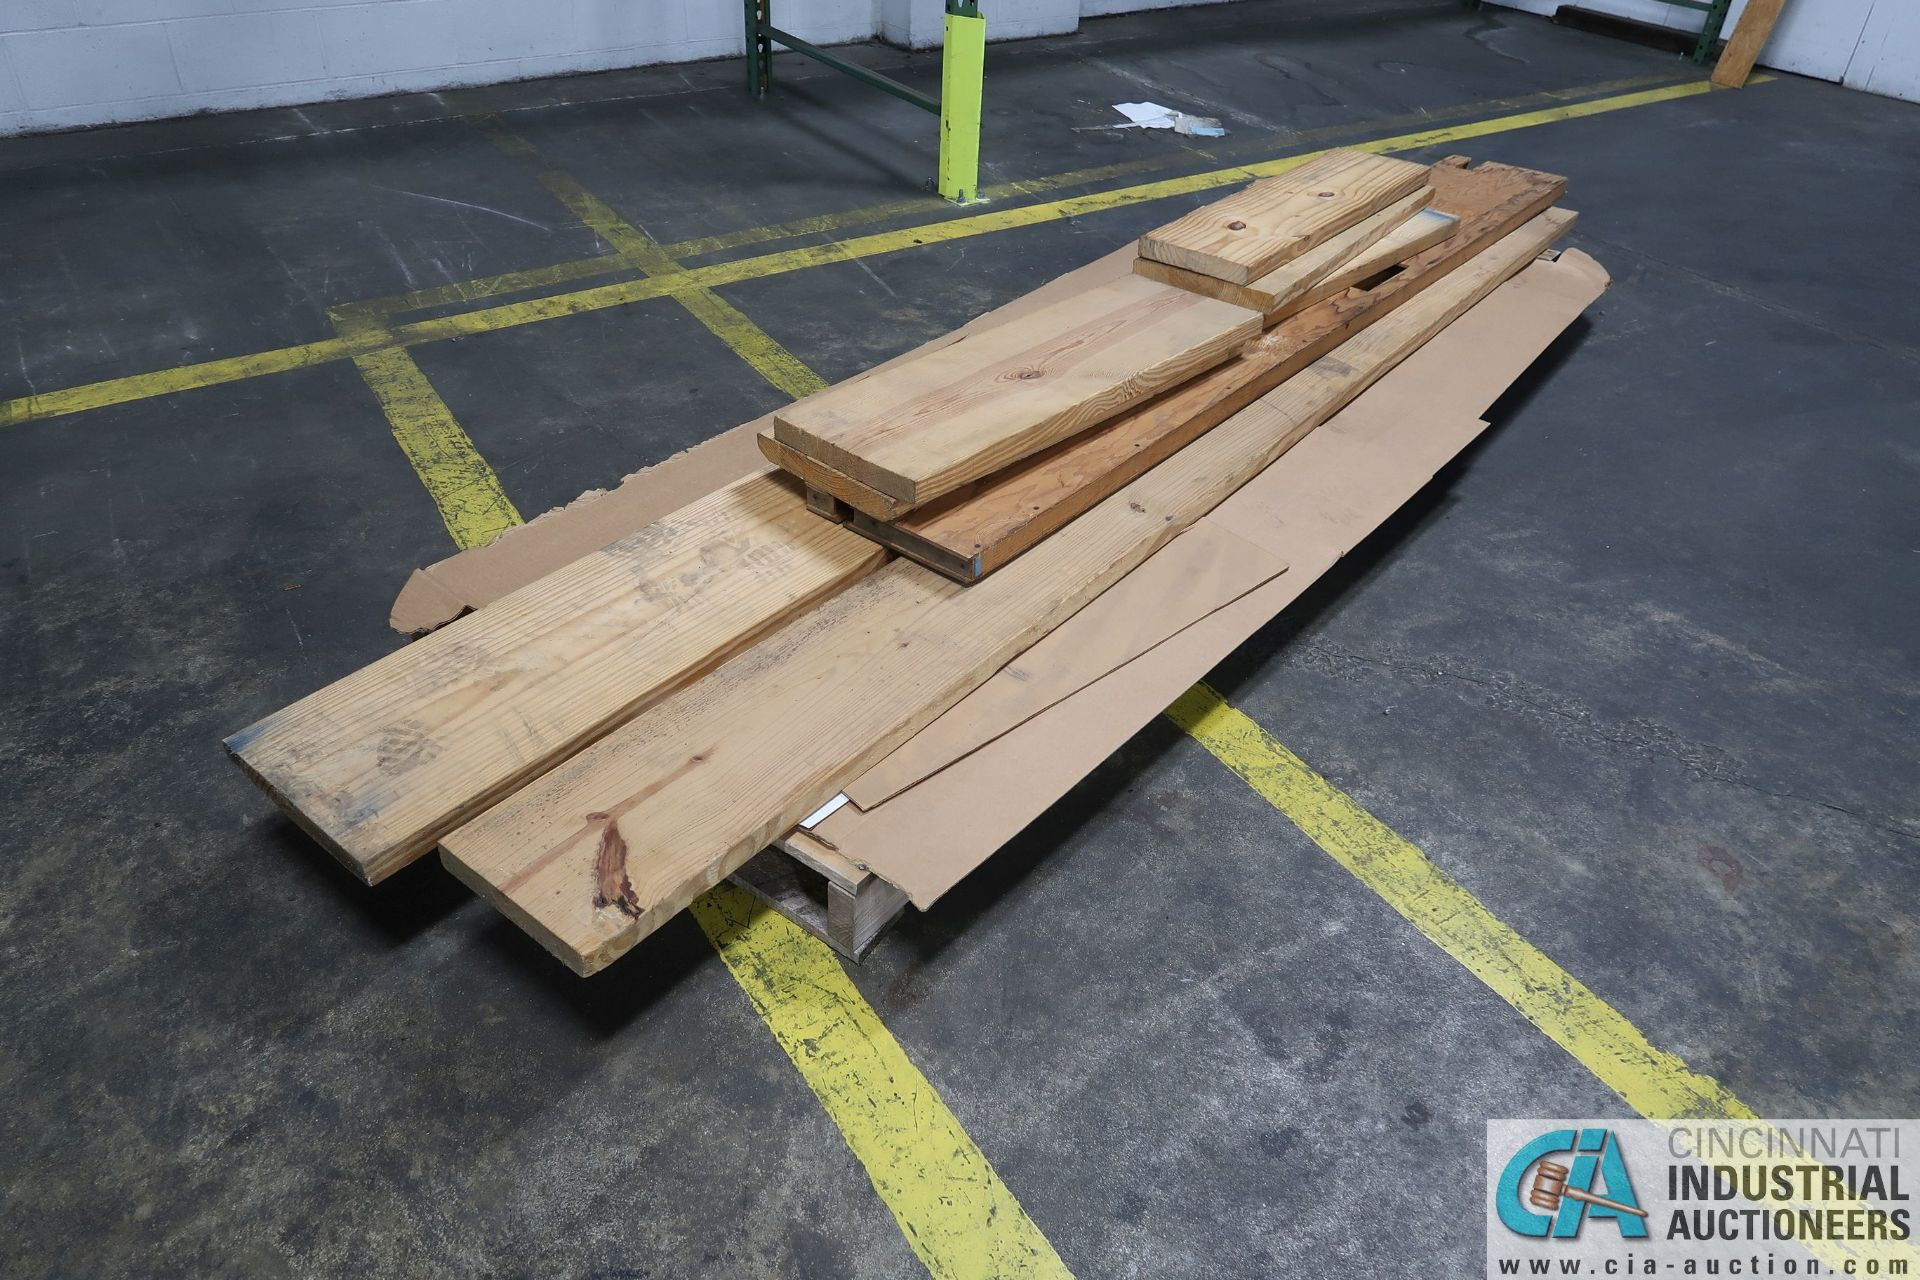 (LOT) MISCELLANEOUS SIZE AND LENGTH CONSTRUCTION LUMBER - Image 4 of 4